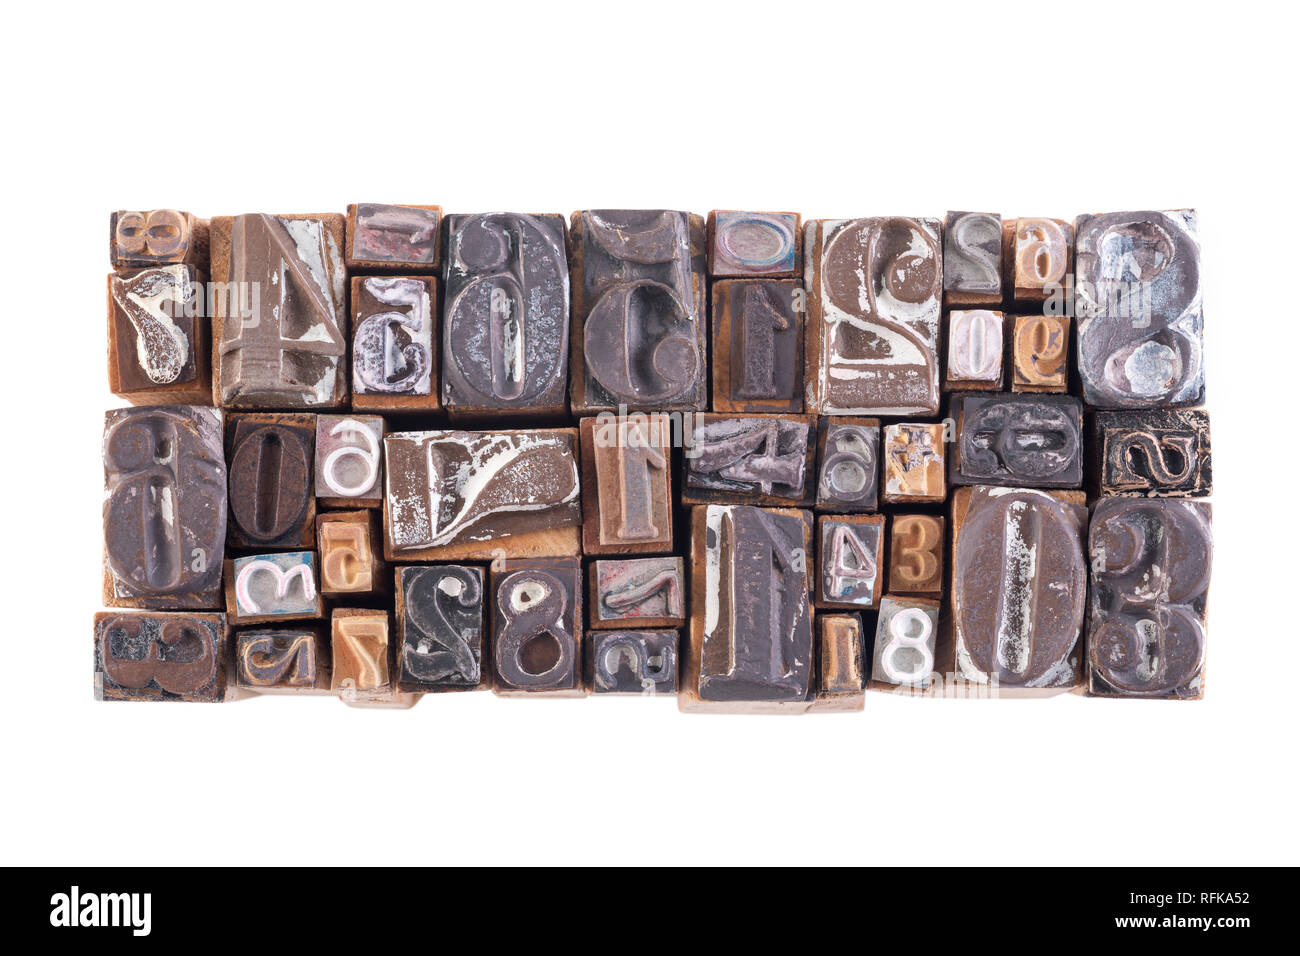 Old wooden block numbers isolated on white background - Stock Image